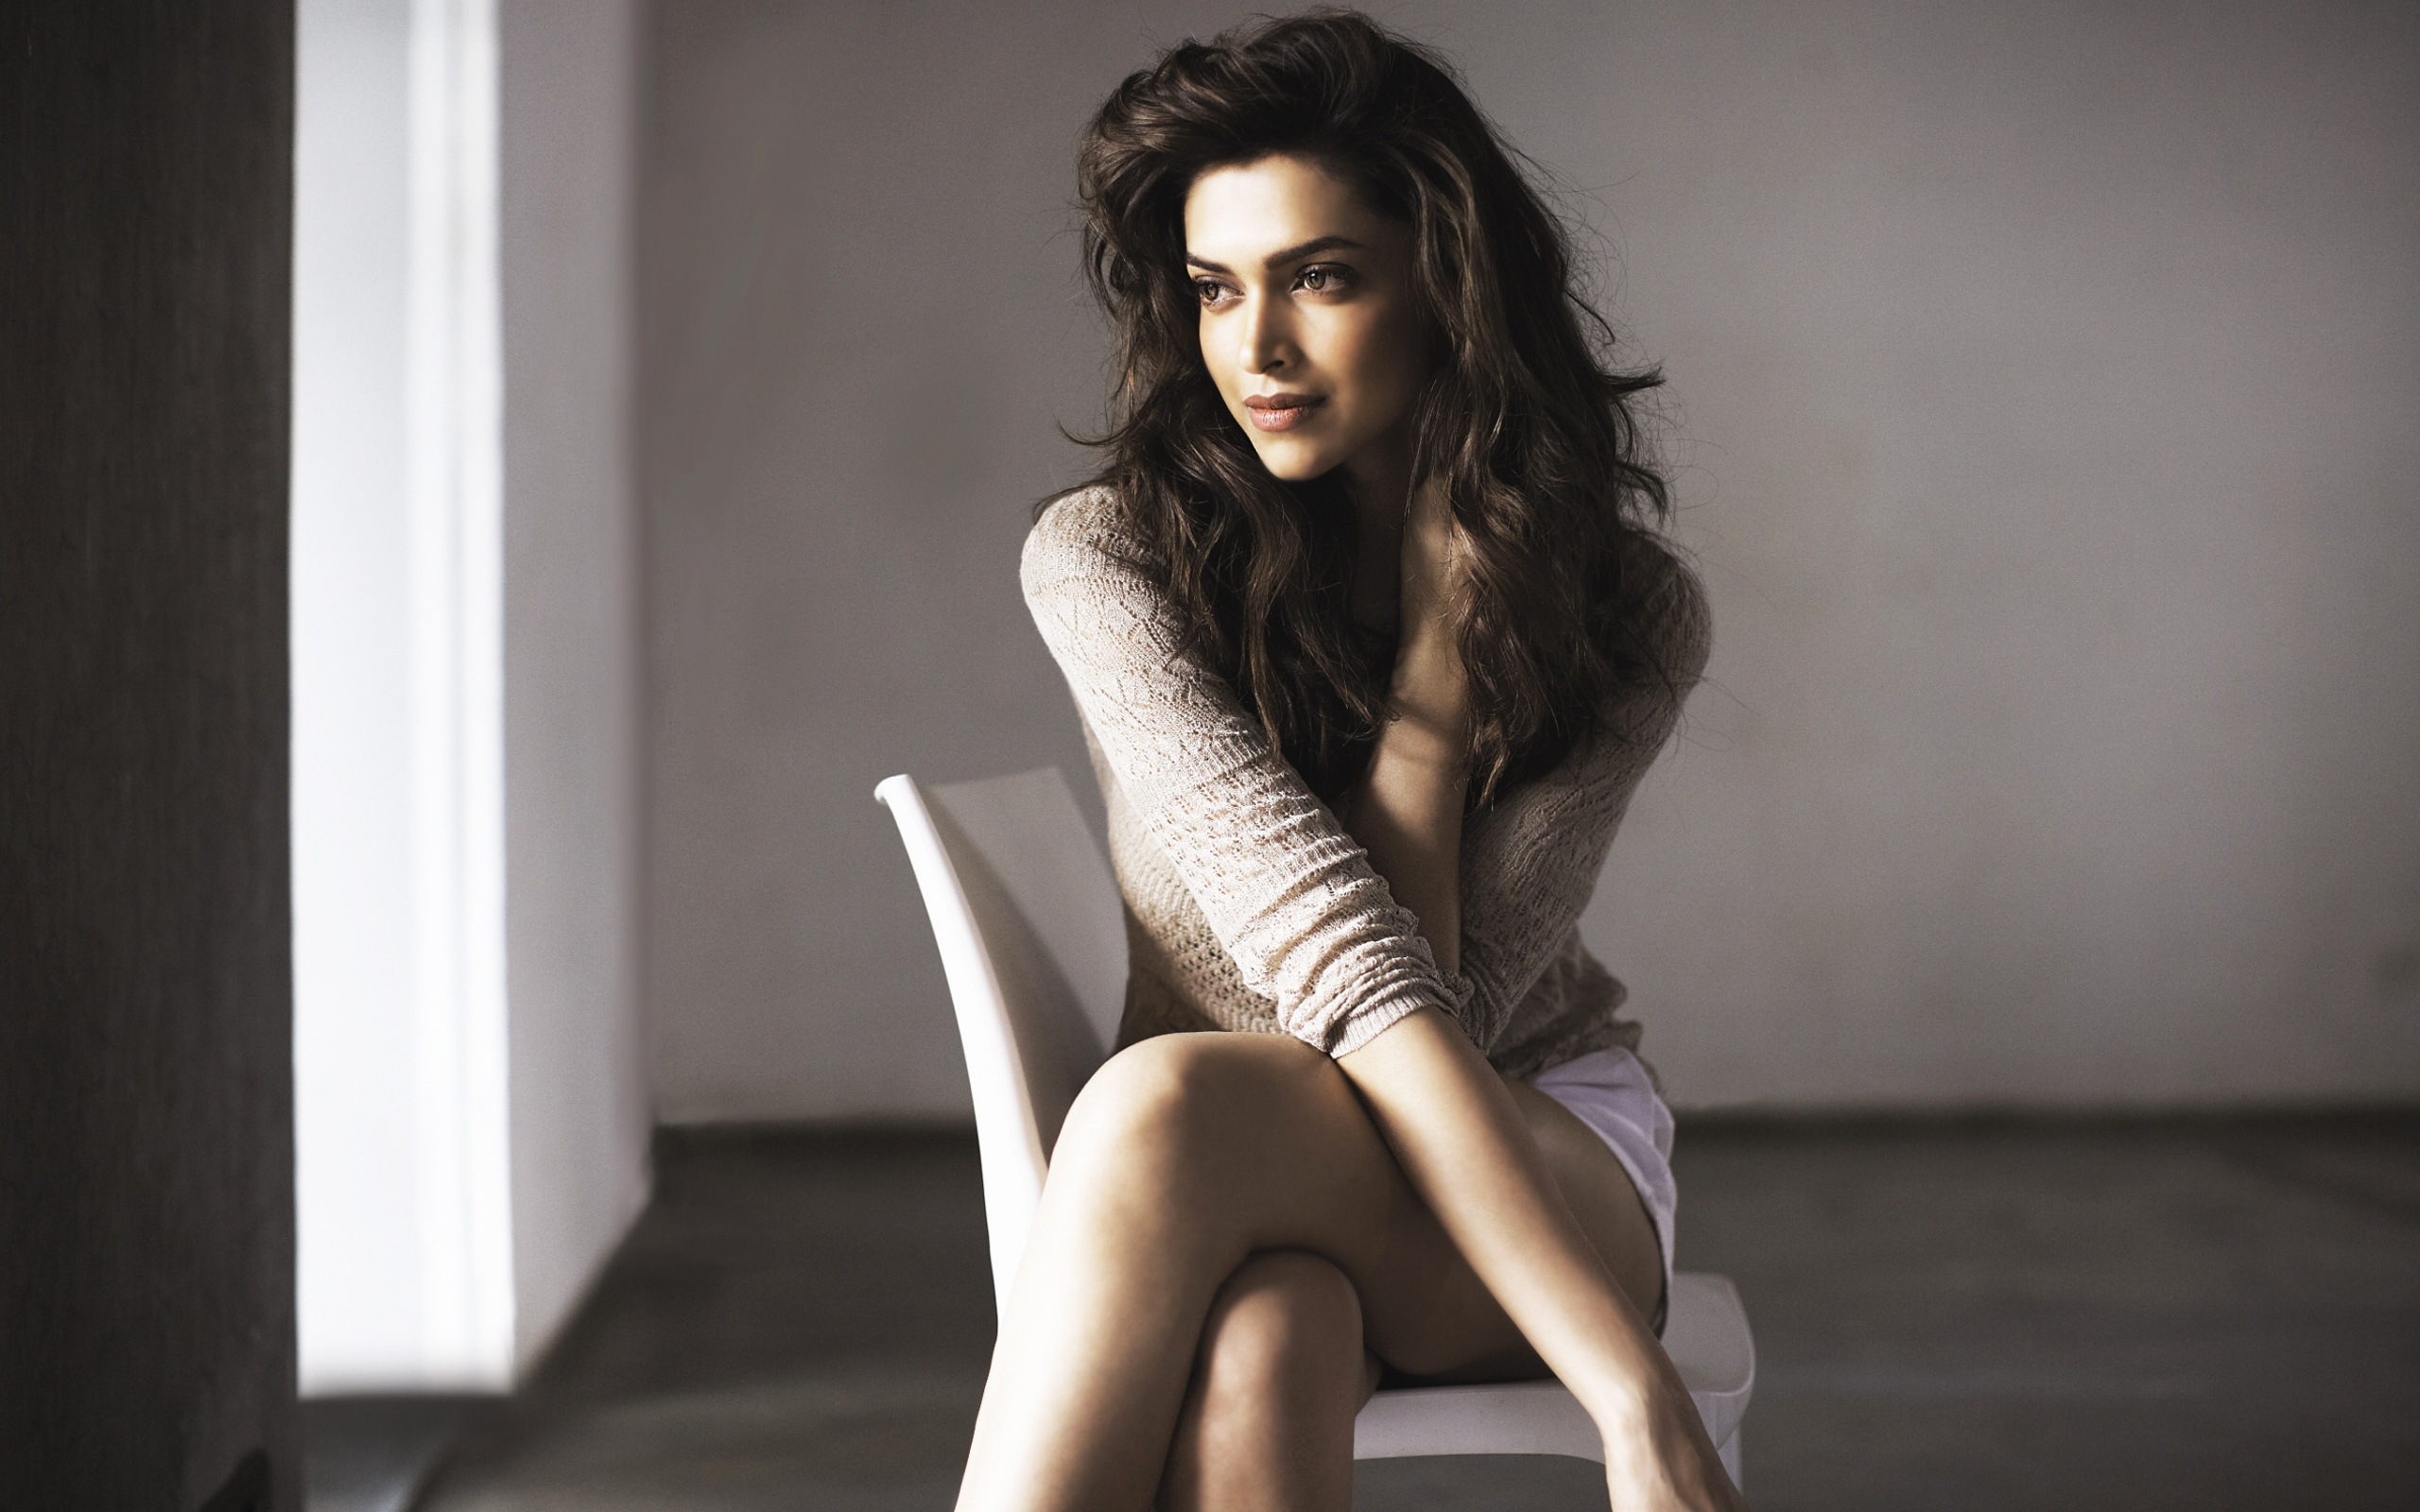 deepika padukone hot wallpapers | wallpapers hd